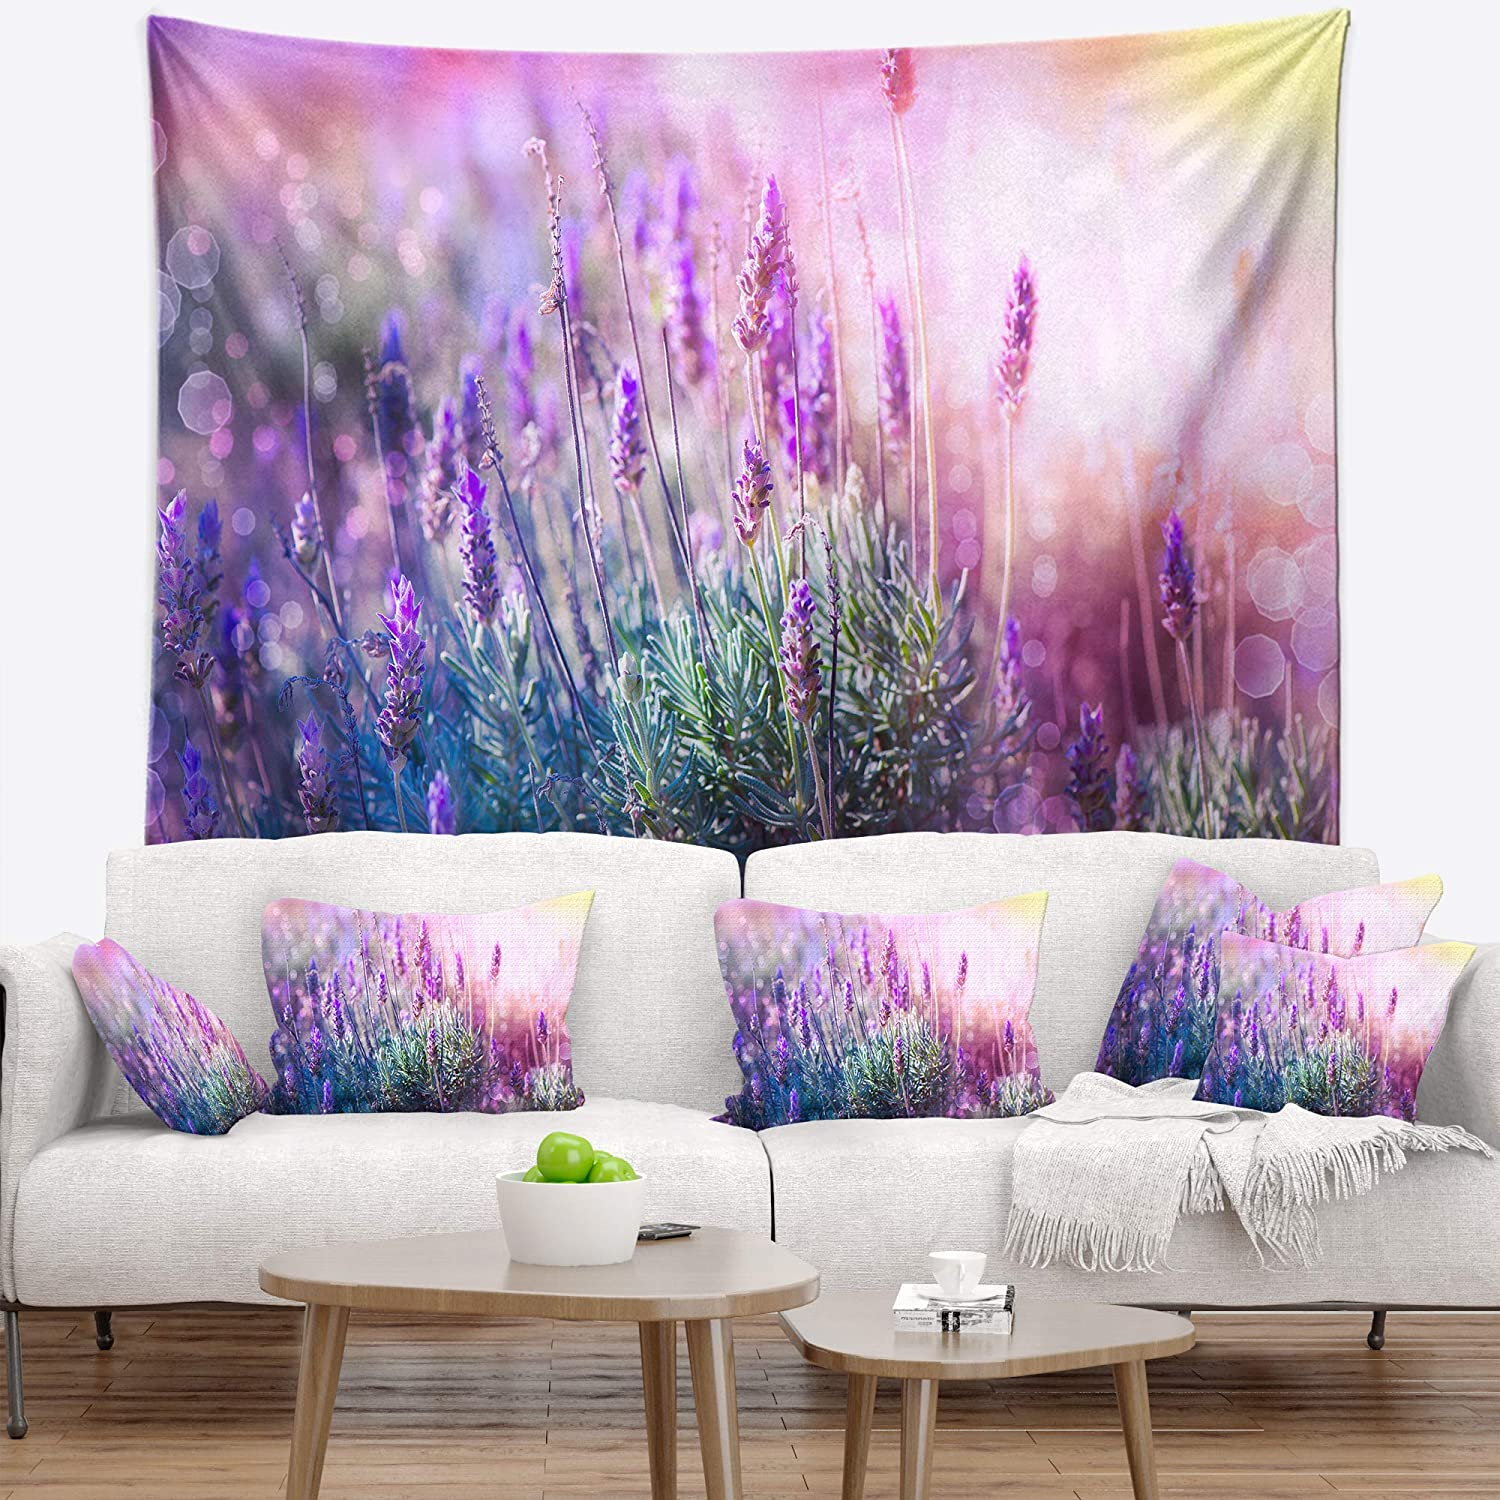 Designart TAP9250-39-32 ' Growing and Blooming Lavender' Floral Blanket Décor Art for Home and Office Wall Tapestry Medium: 39 in. x 32 in. Created On Lightweight Polyester Fabric